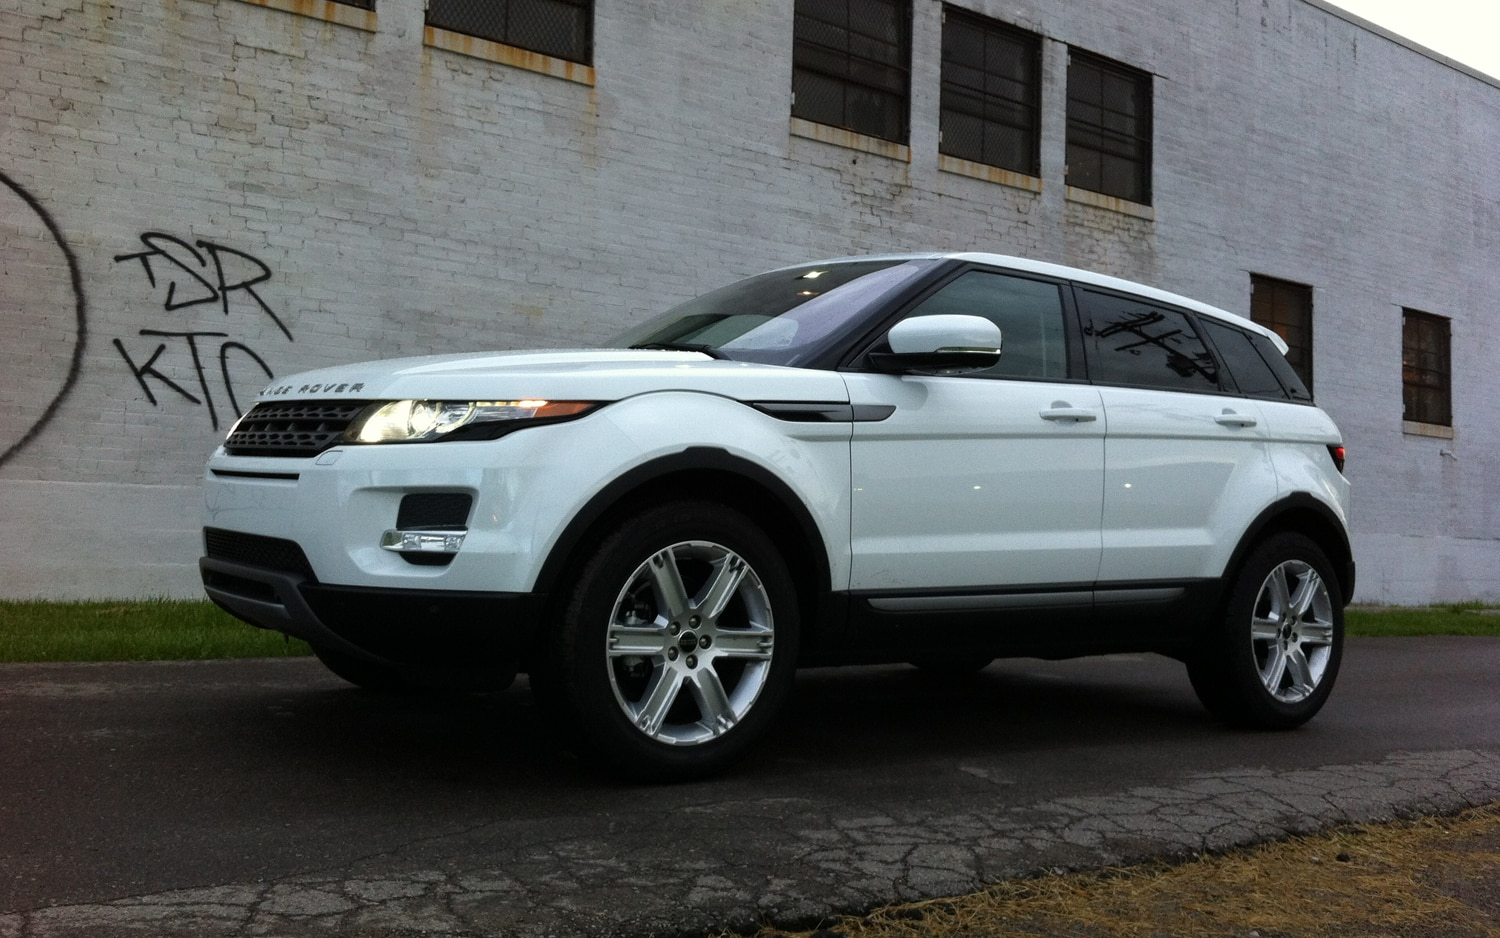 2012 Land Rover Range Rover Evoque Front Left Side View1